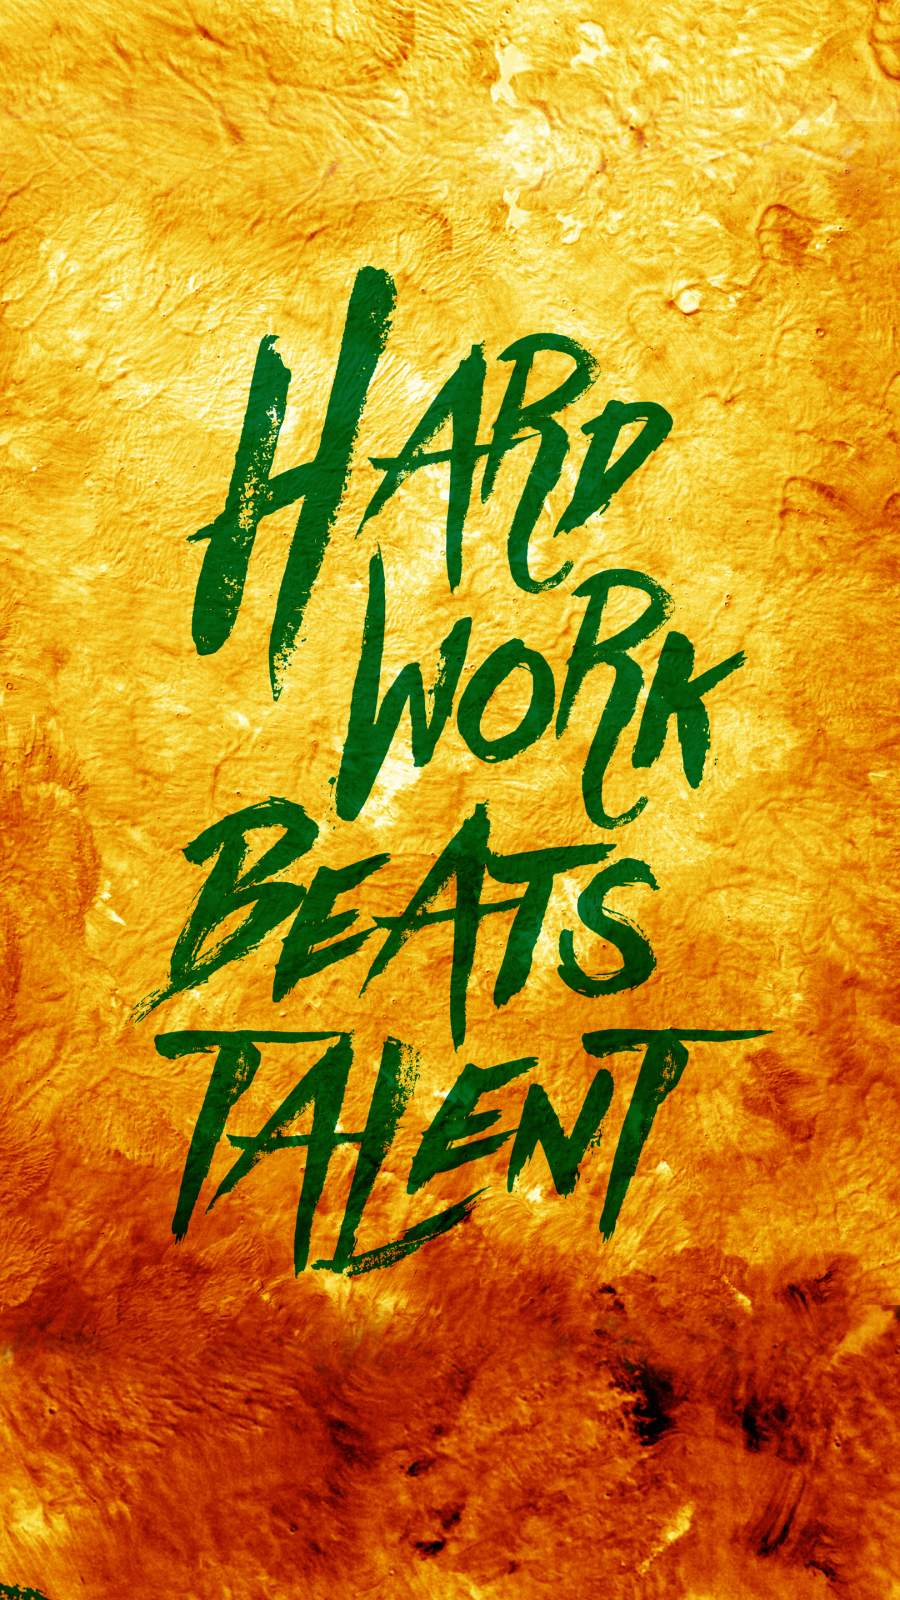 Hard Work Beats Talent iPhone Wallpaper